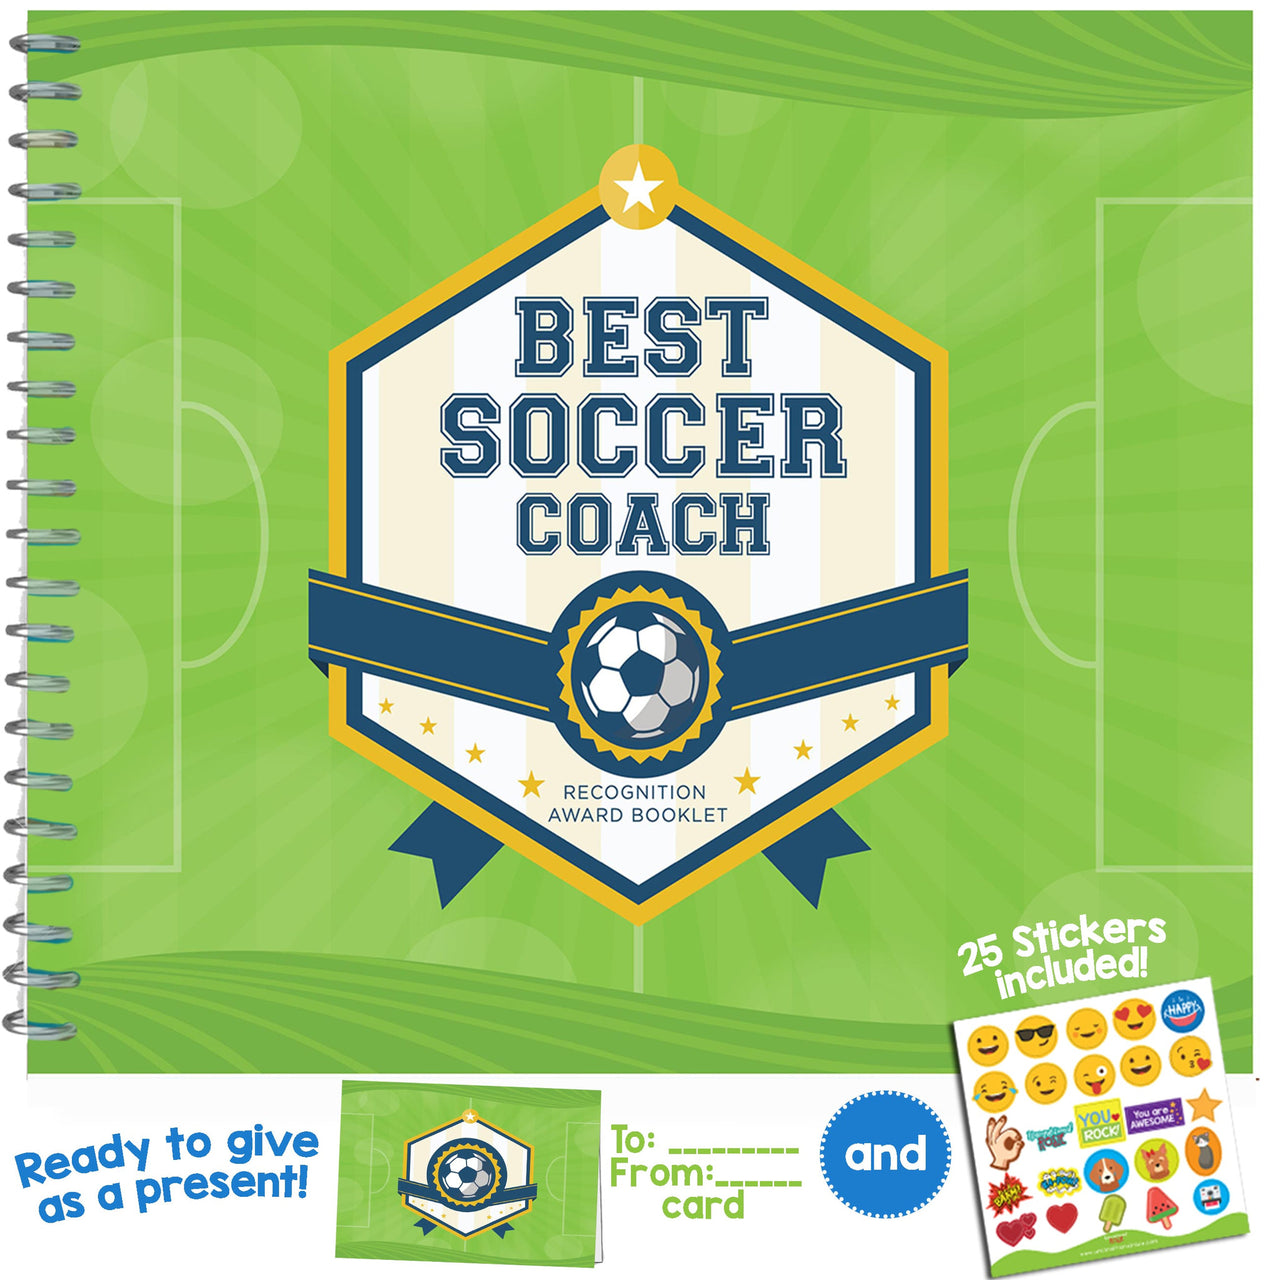 Best Soccer Coach Recognition Award Booklet